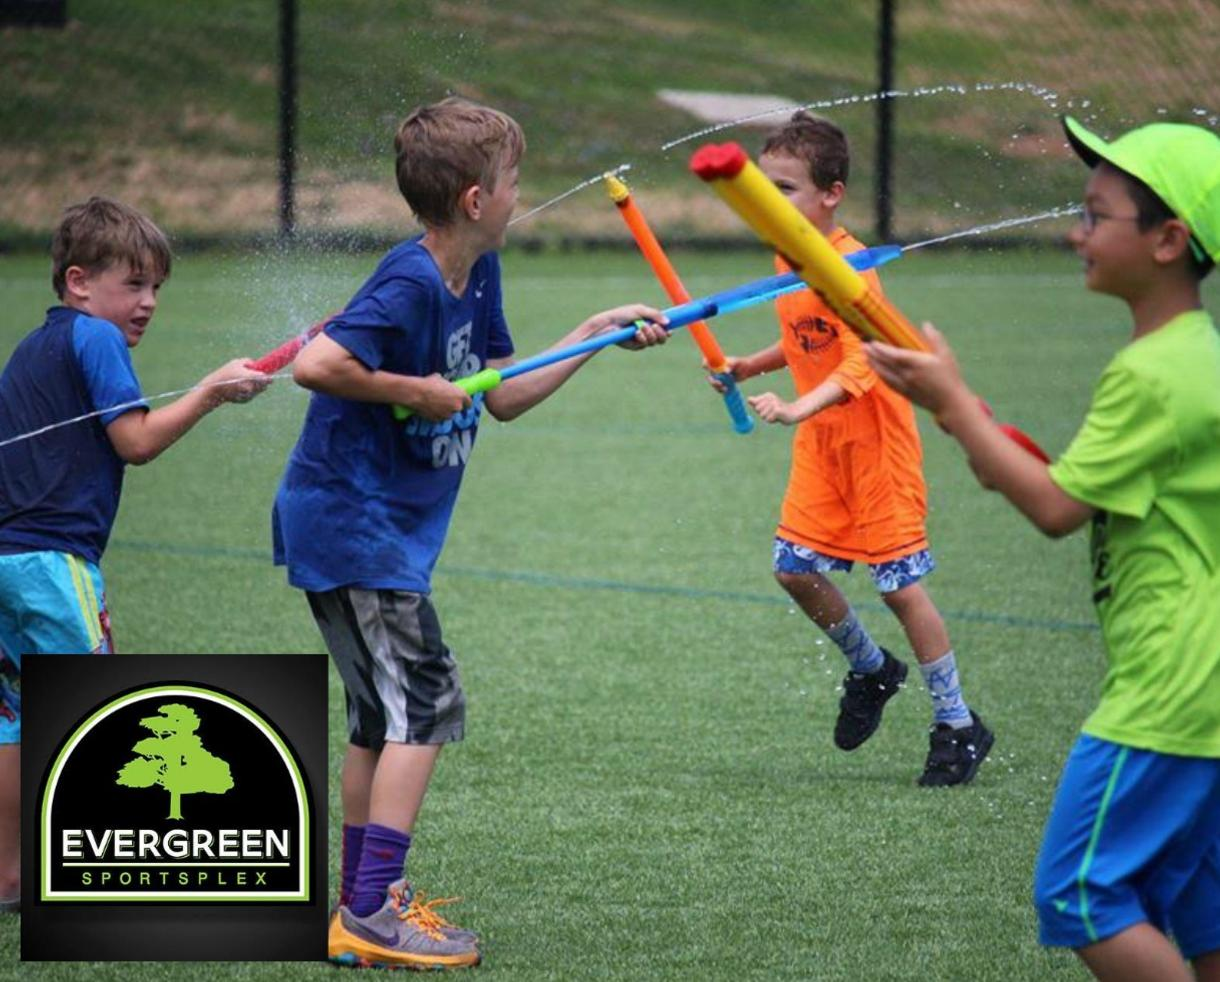 $140 for Evergreen Sportsplex Multi-Sport & Exploration OR Adventure Park Camp for Ages 6-14 in Leesburg ($34 Off!)